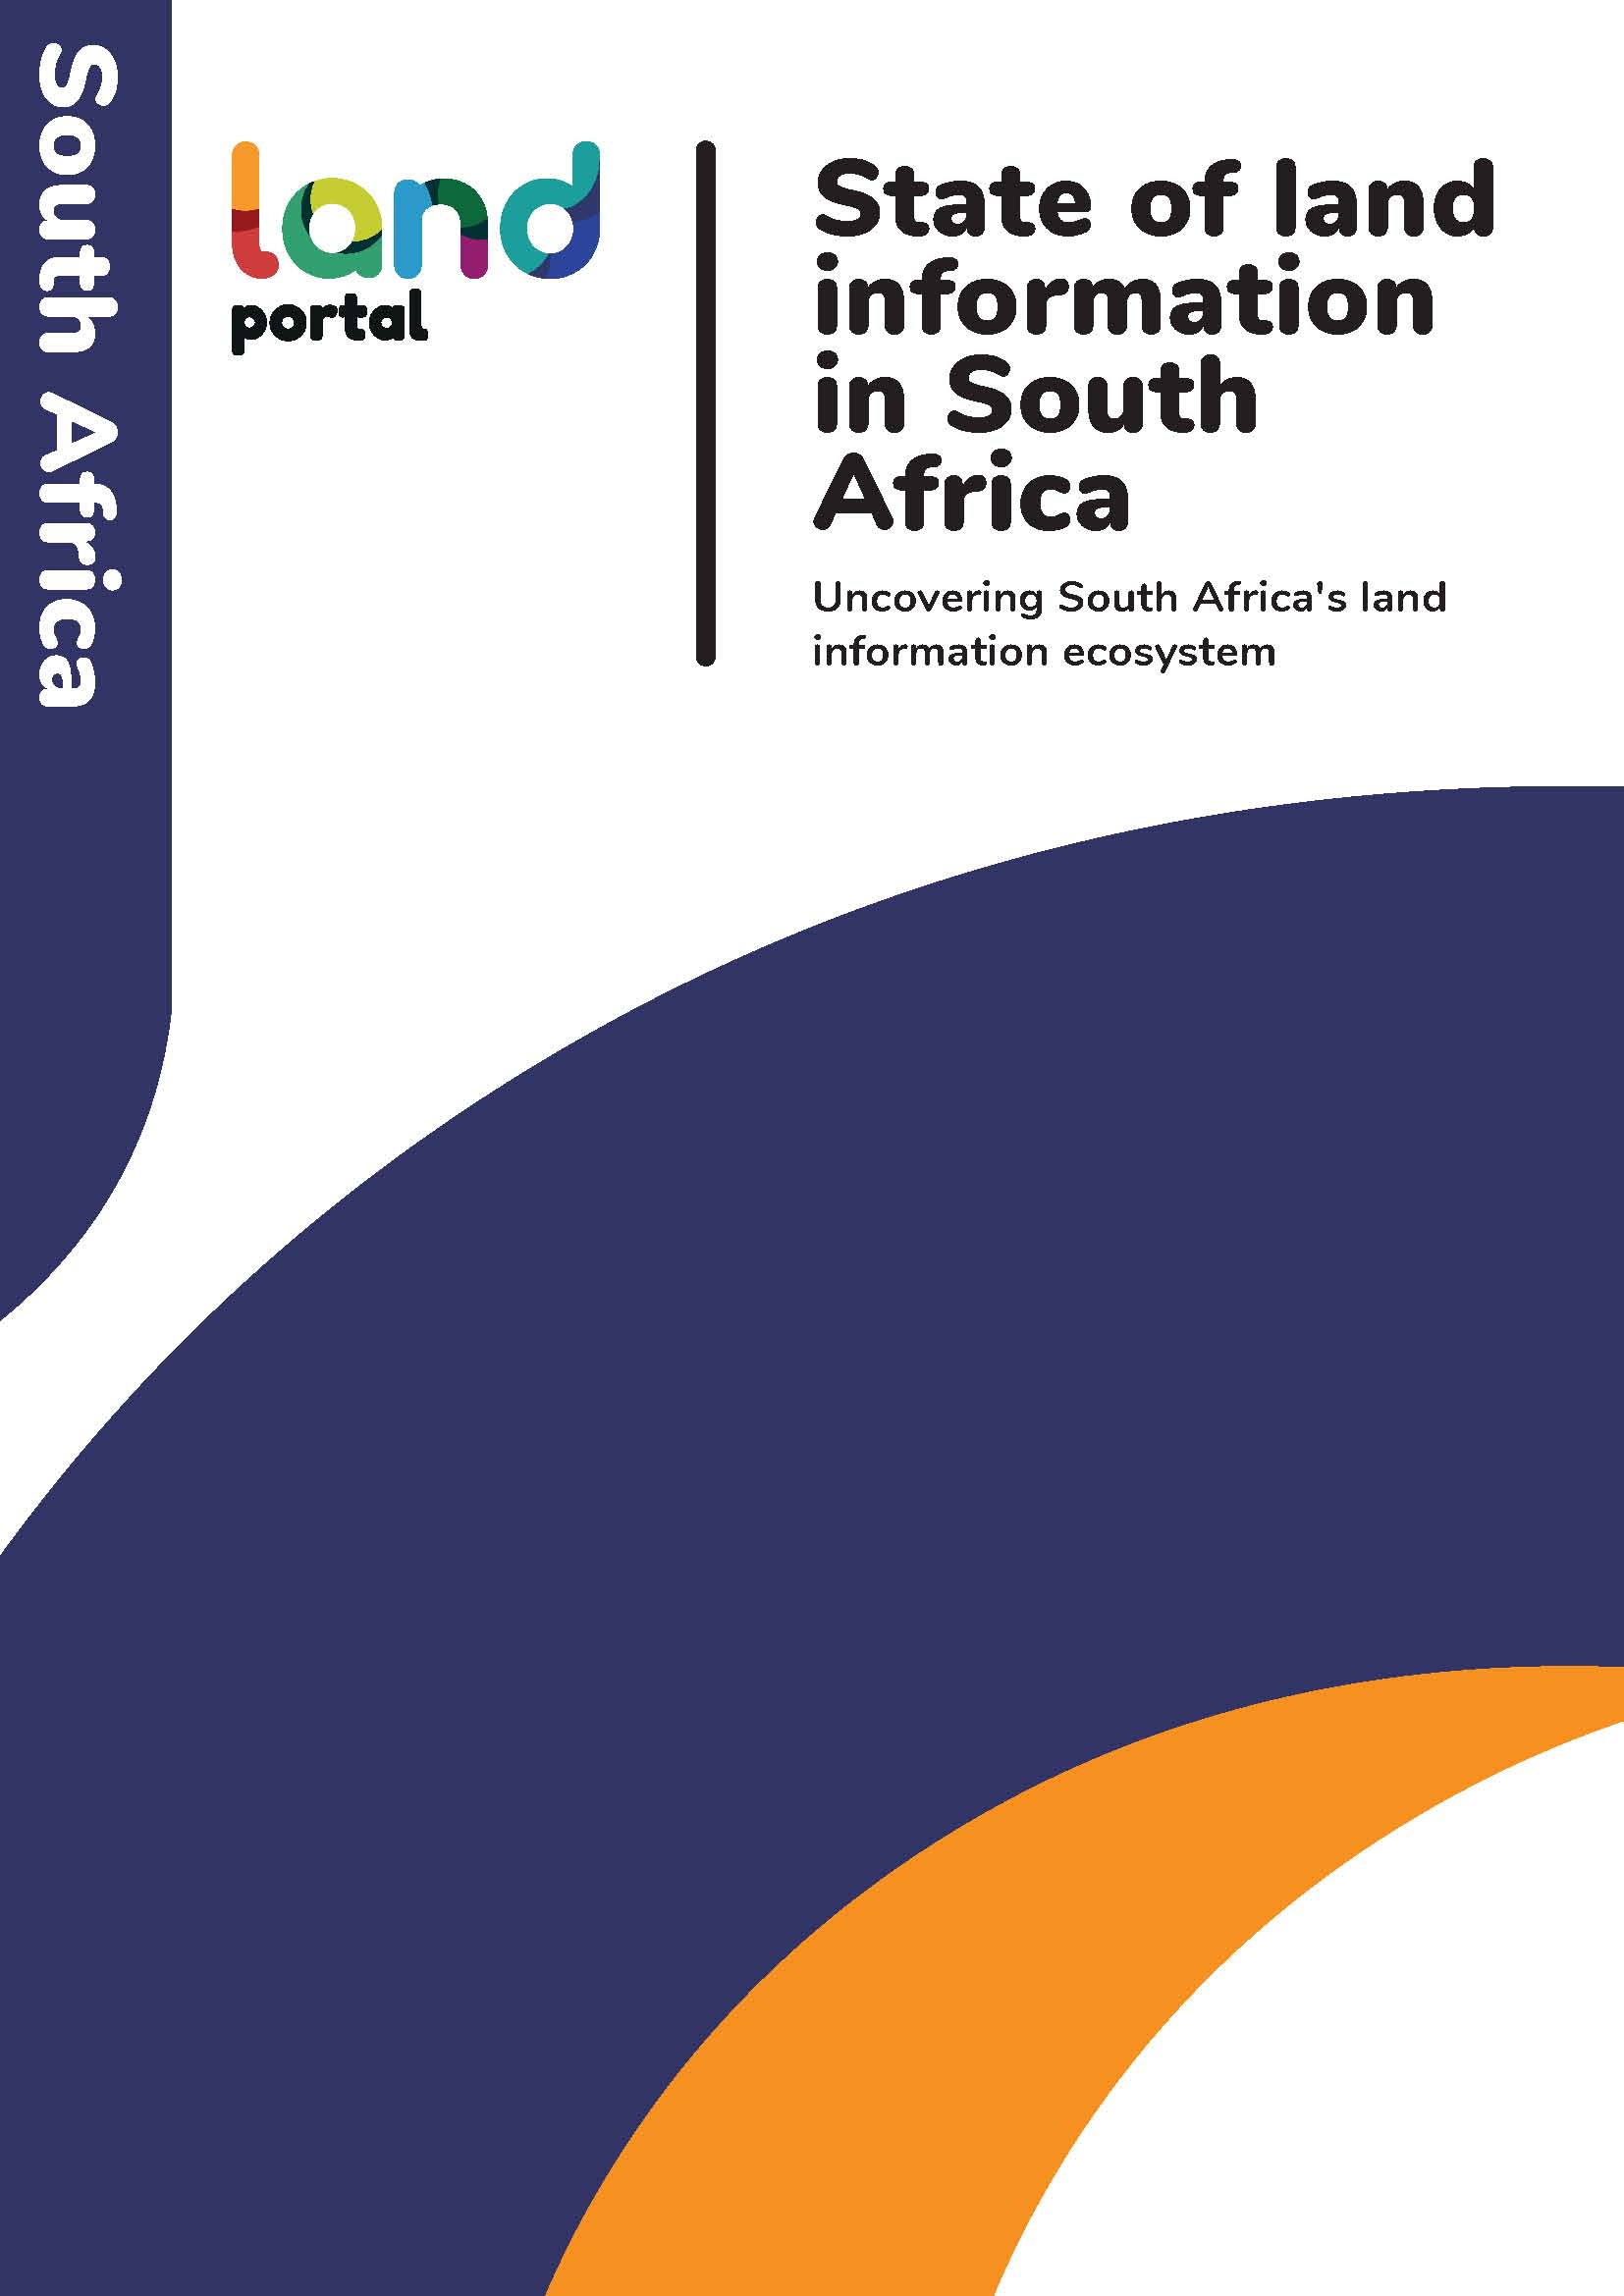 State of land information in South Africa Uncovering South Africa's land information ecosystem